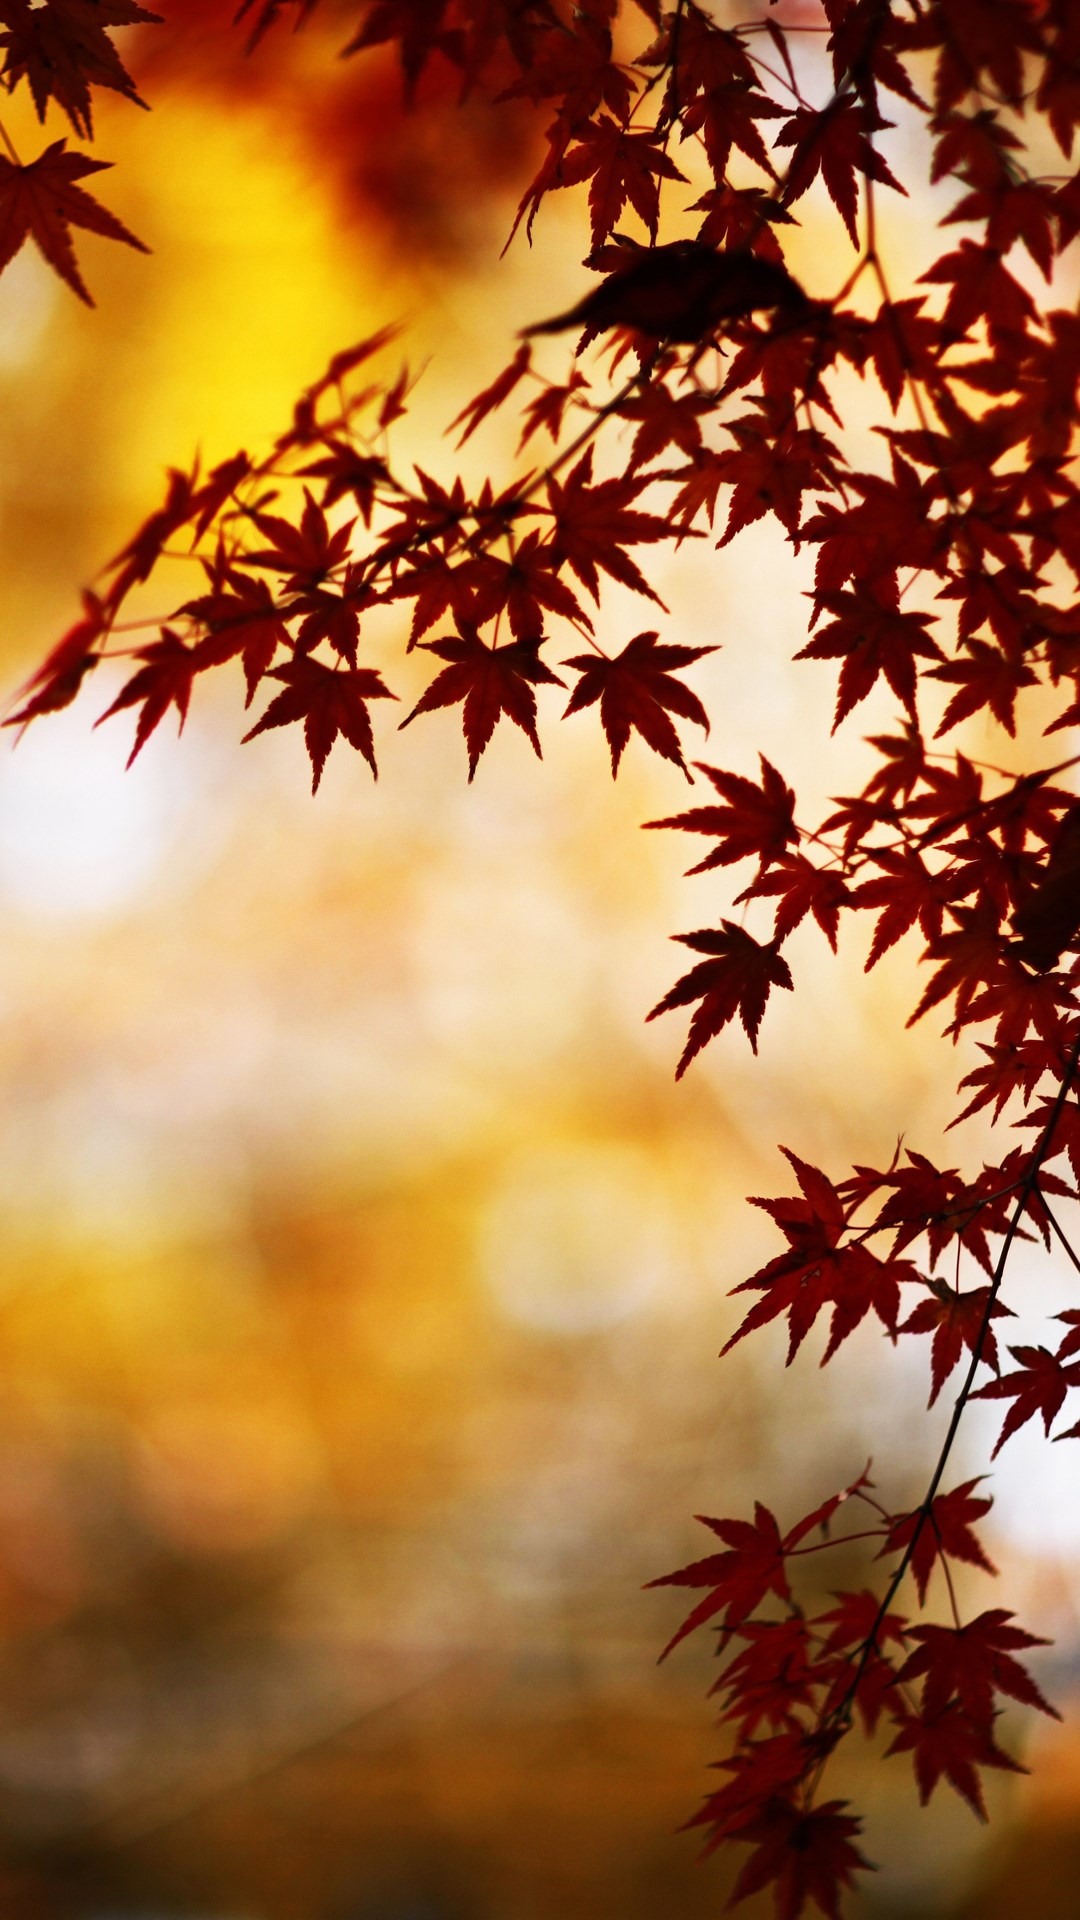 Falling Leaves Wallpaper Screensavers Wallpapers Of The Week Autumn